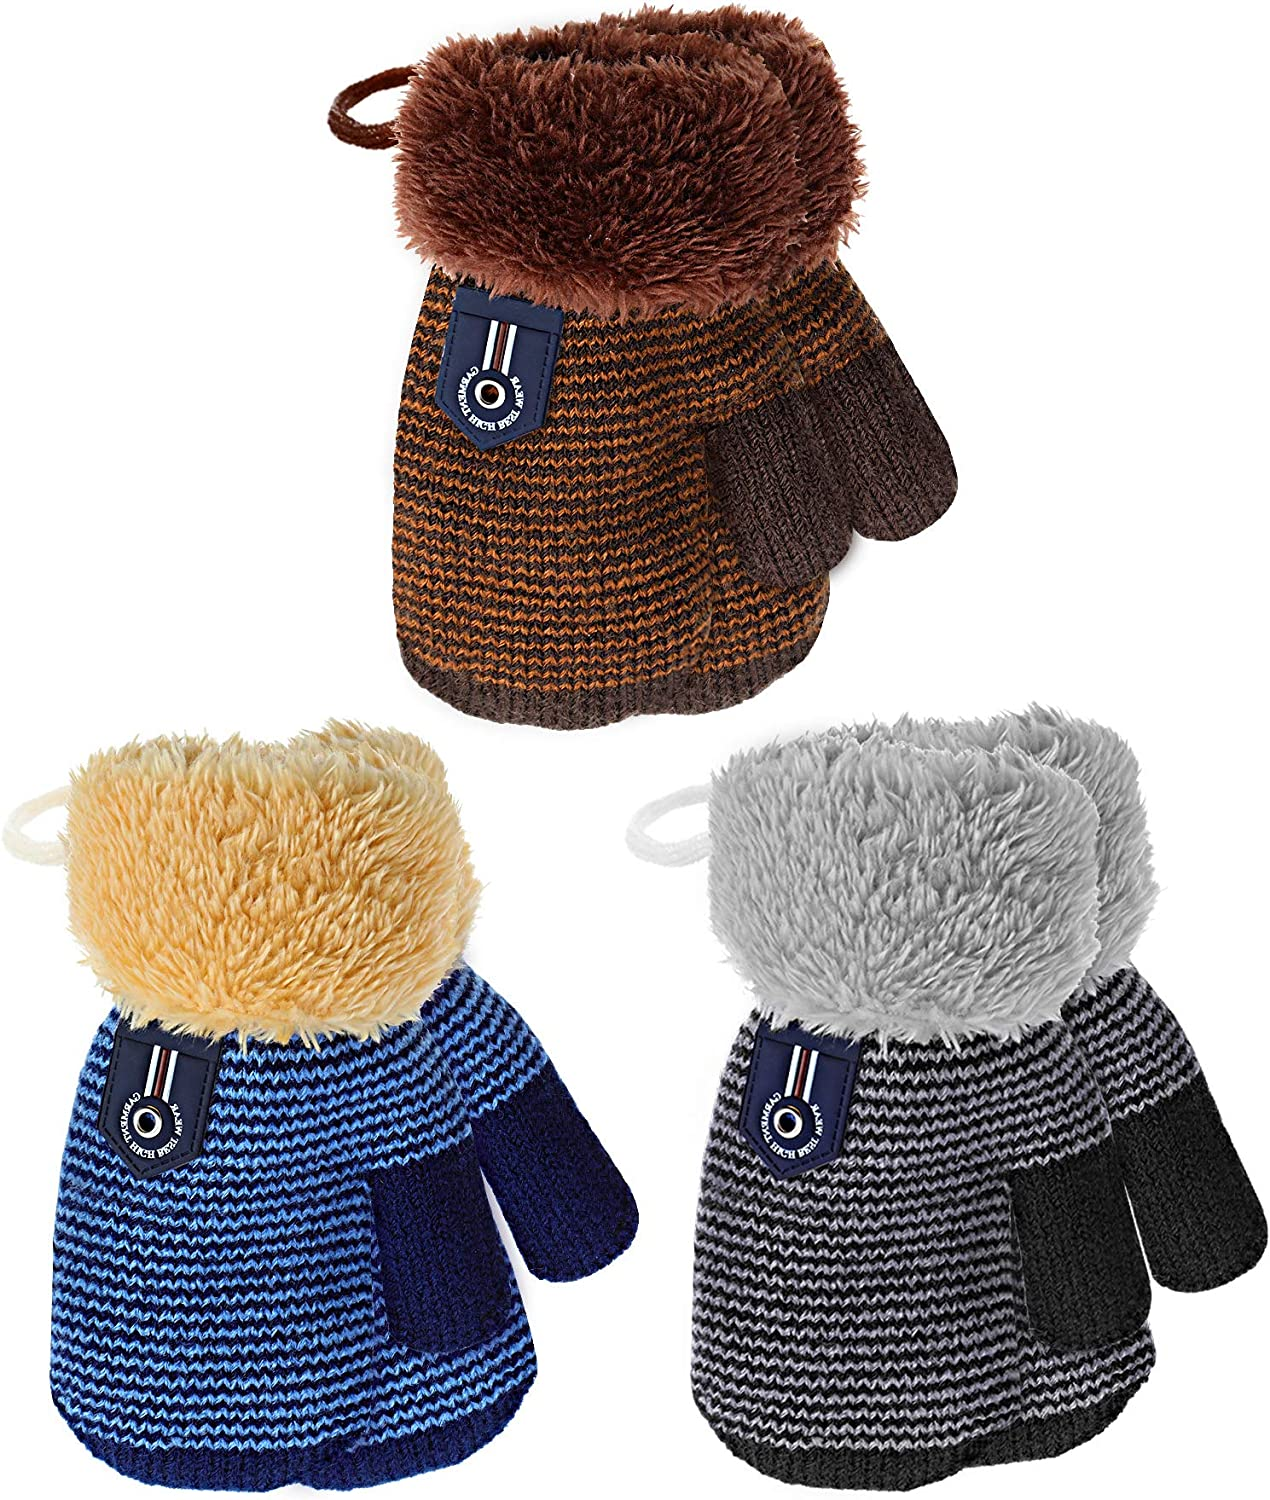 Newborn Size Blue Baby Mittens Winter Warm Knitted Mitts Boys Ribbed Gloves Girls Plain Knit Acrylic Mittens Colour 12 Months